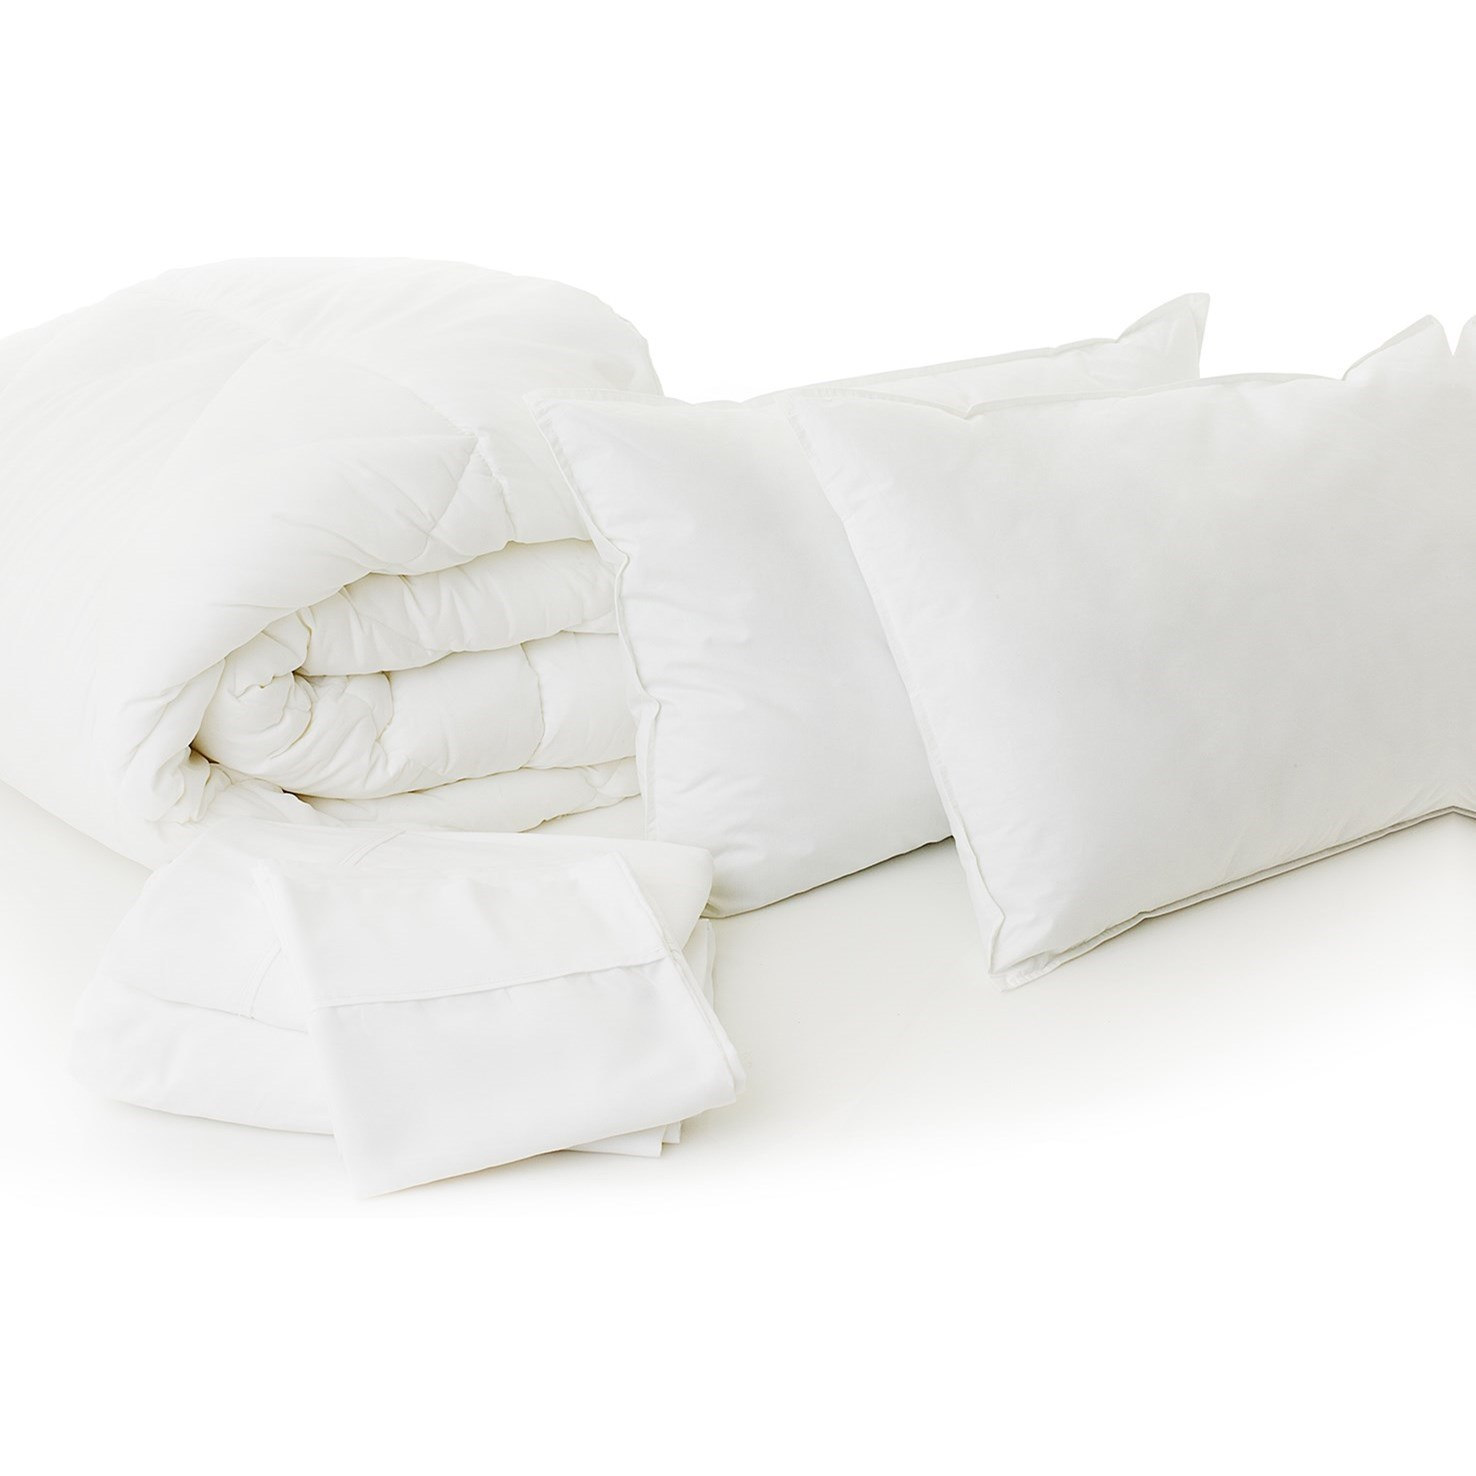 Malouf Bed in a Bag Twin XL Bed in a Bag  - Item Number: MA01TXBB